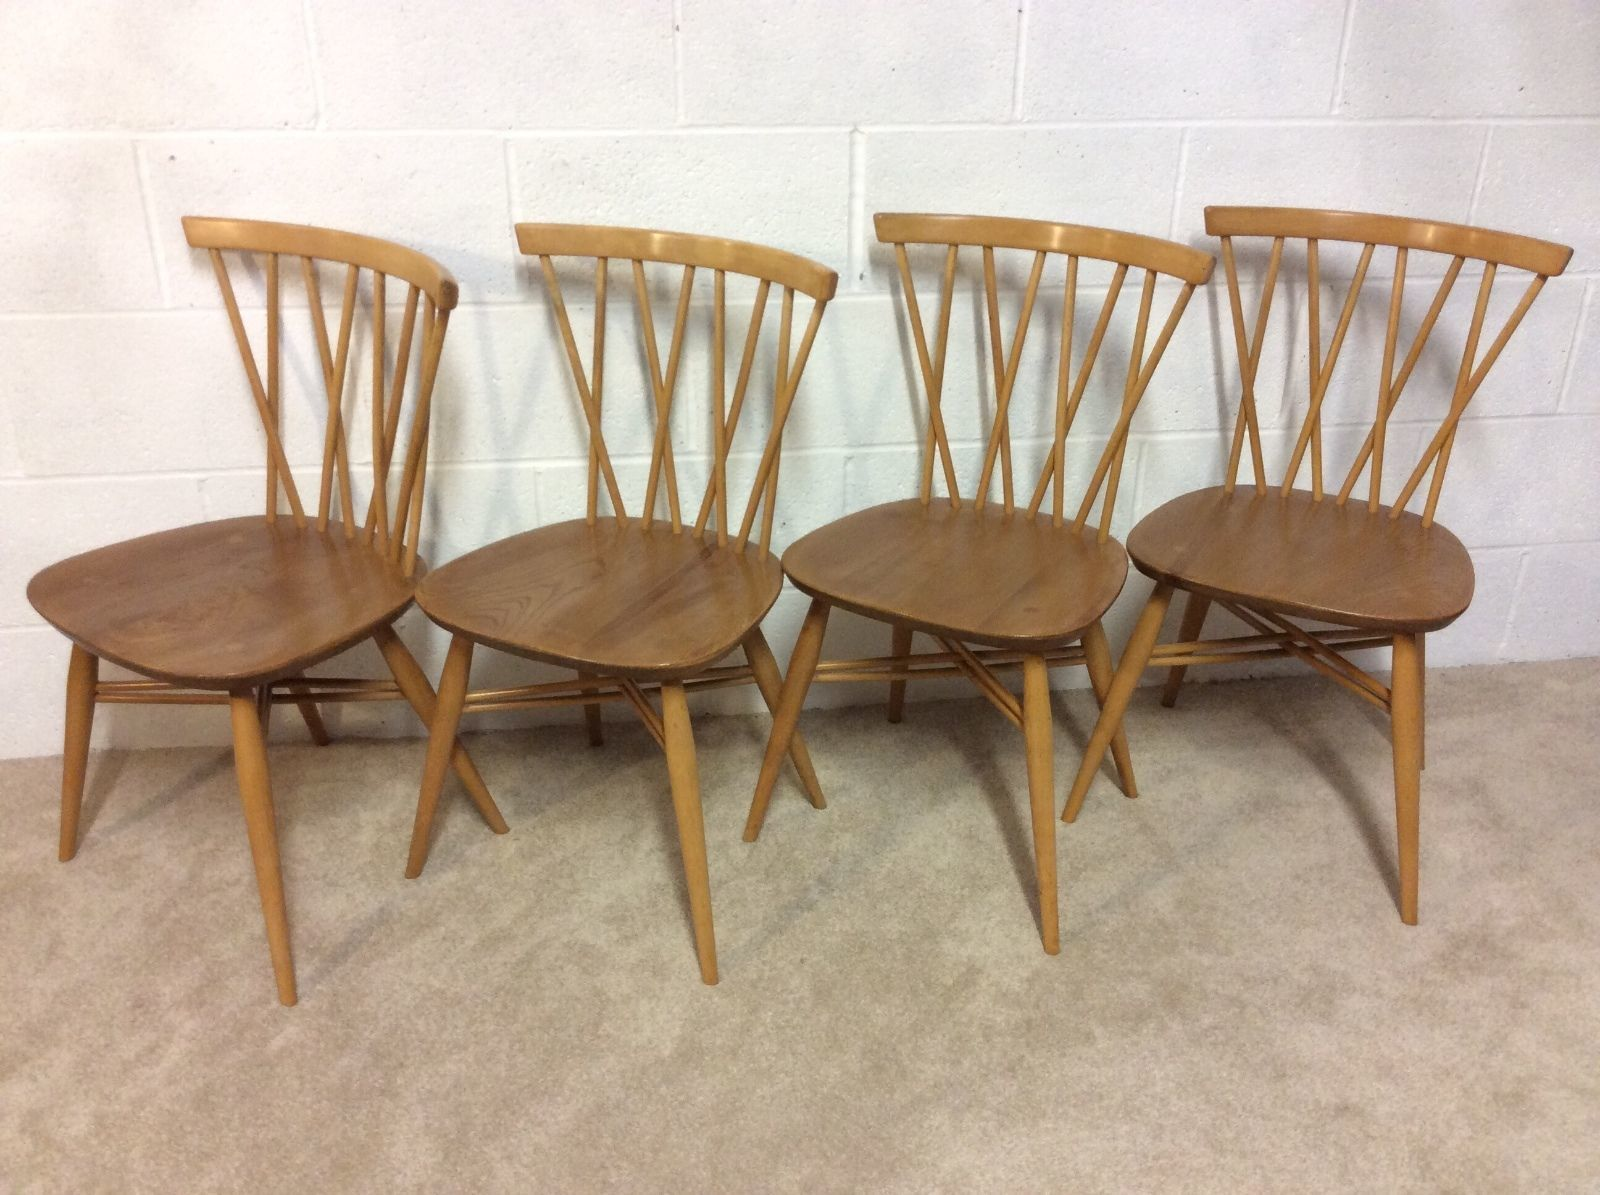 separation shoes f8a46 90db3 4x Vintage Ercol Windsor Model 376 Candlestick Dining Chairs Mid Century  Retro